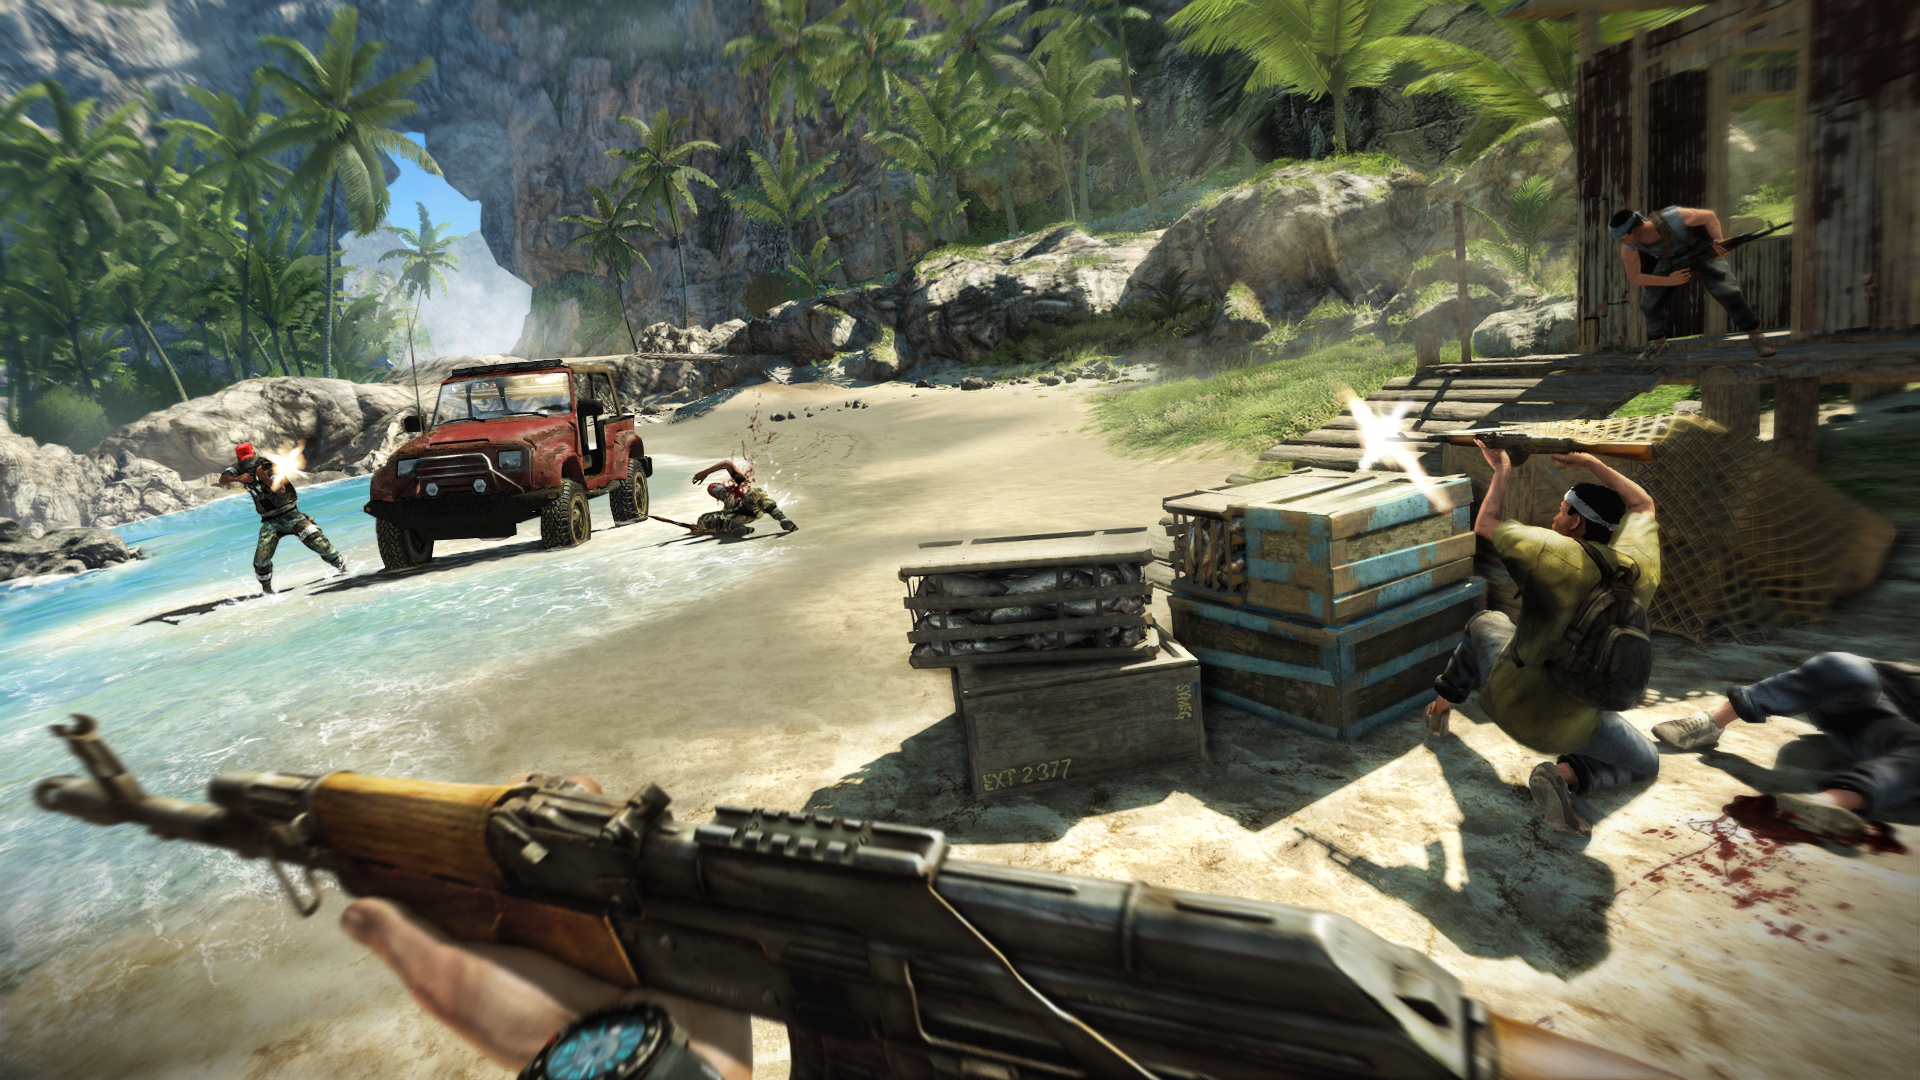 Far Cry 3 Weapons Mod Want to Make Far Cry 3 More